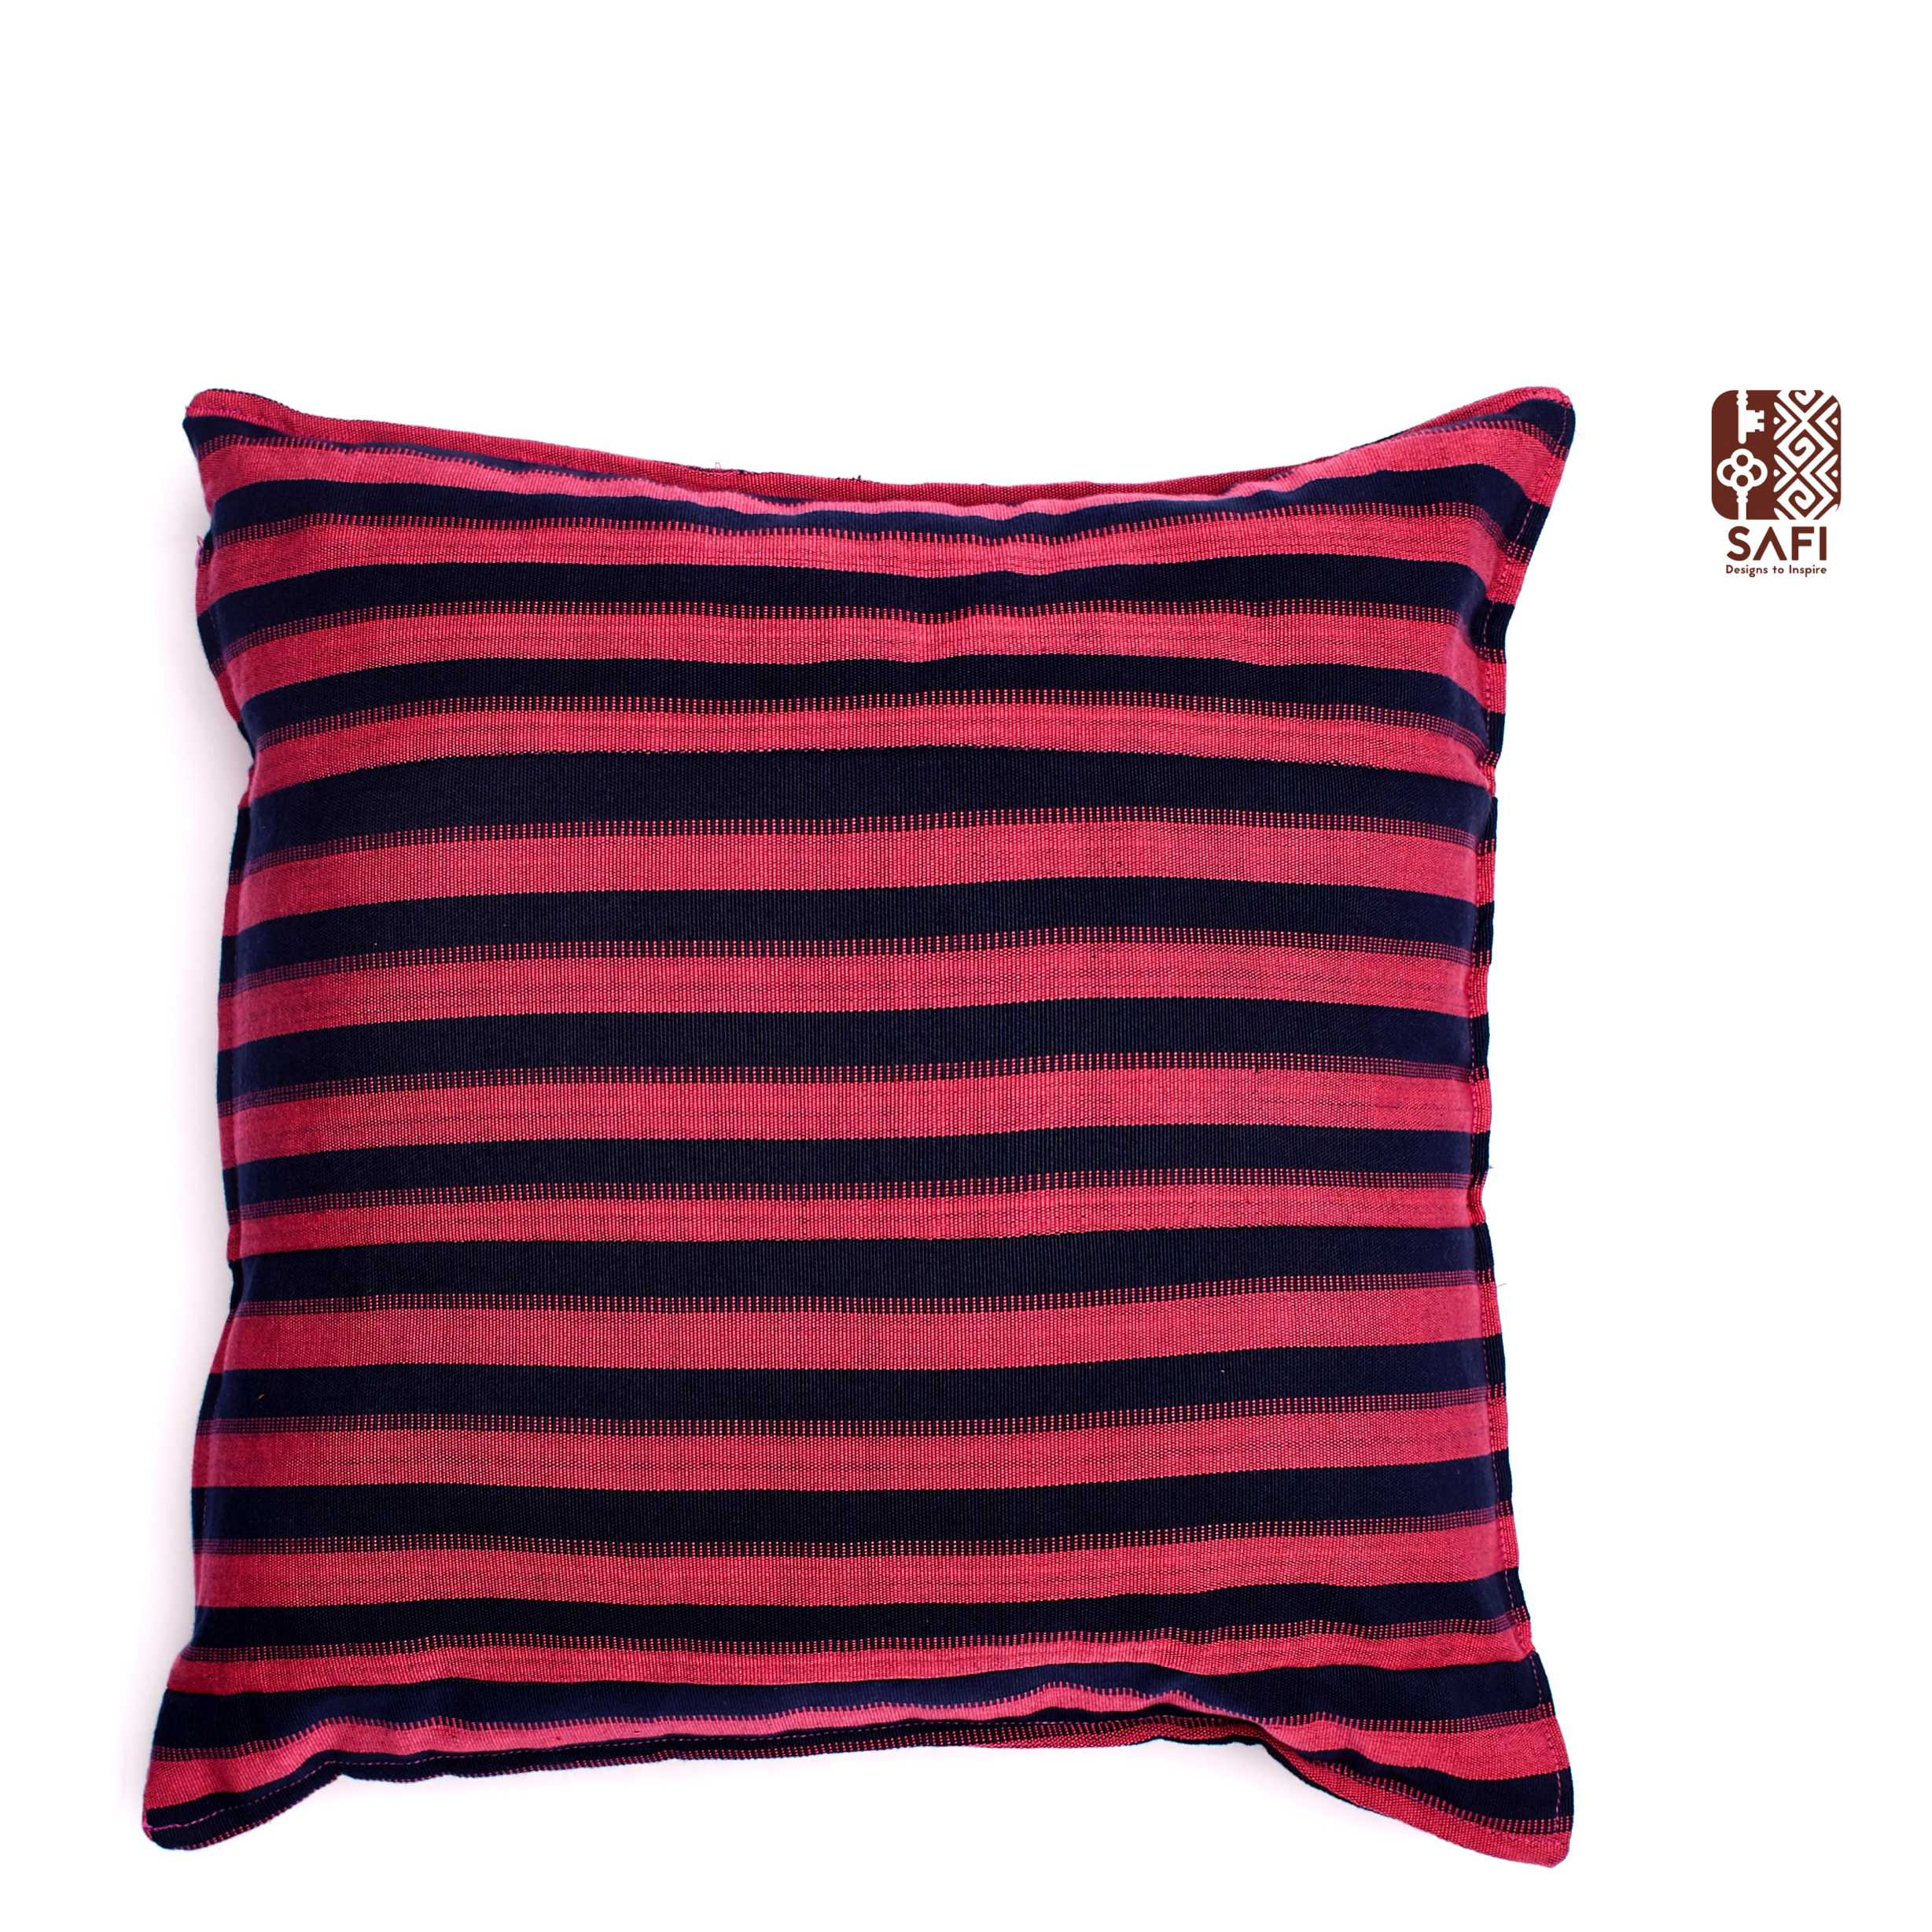 Safi Label Safi Label Is A 100 Made In Africa Fashion Brand That Produces Responsibly Crafted Apparel Accessories And Home Goods We Aim To Create Unique Products Steeped In Tradition And